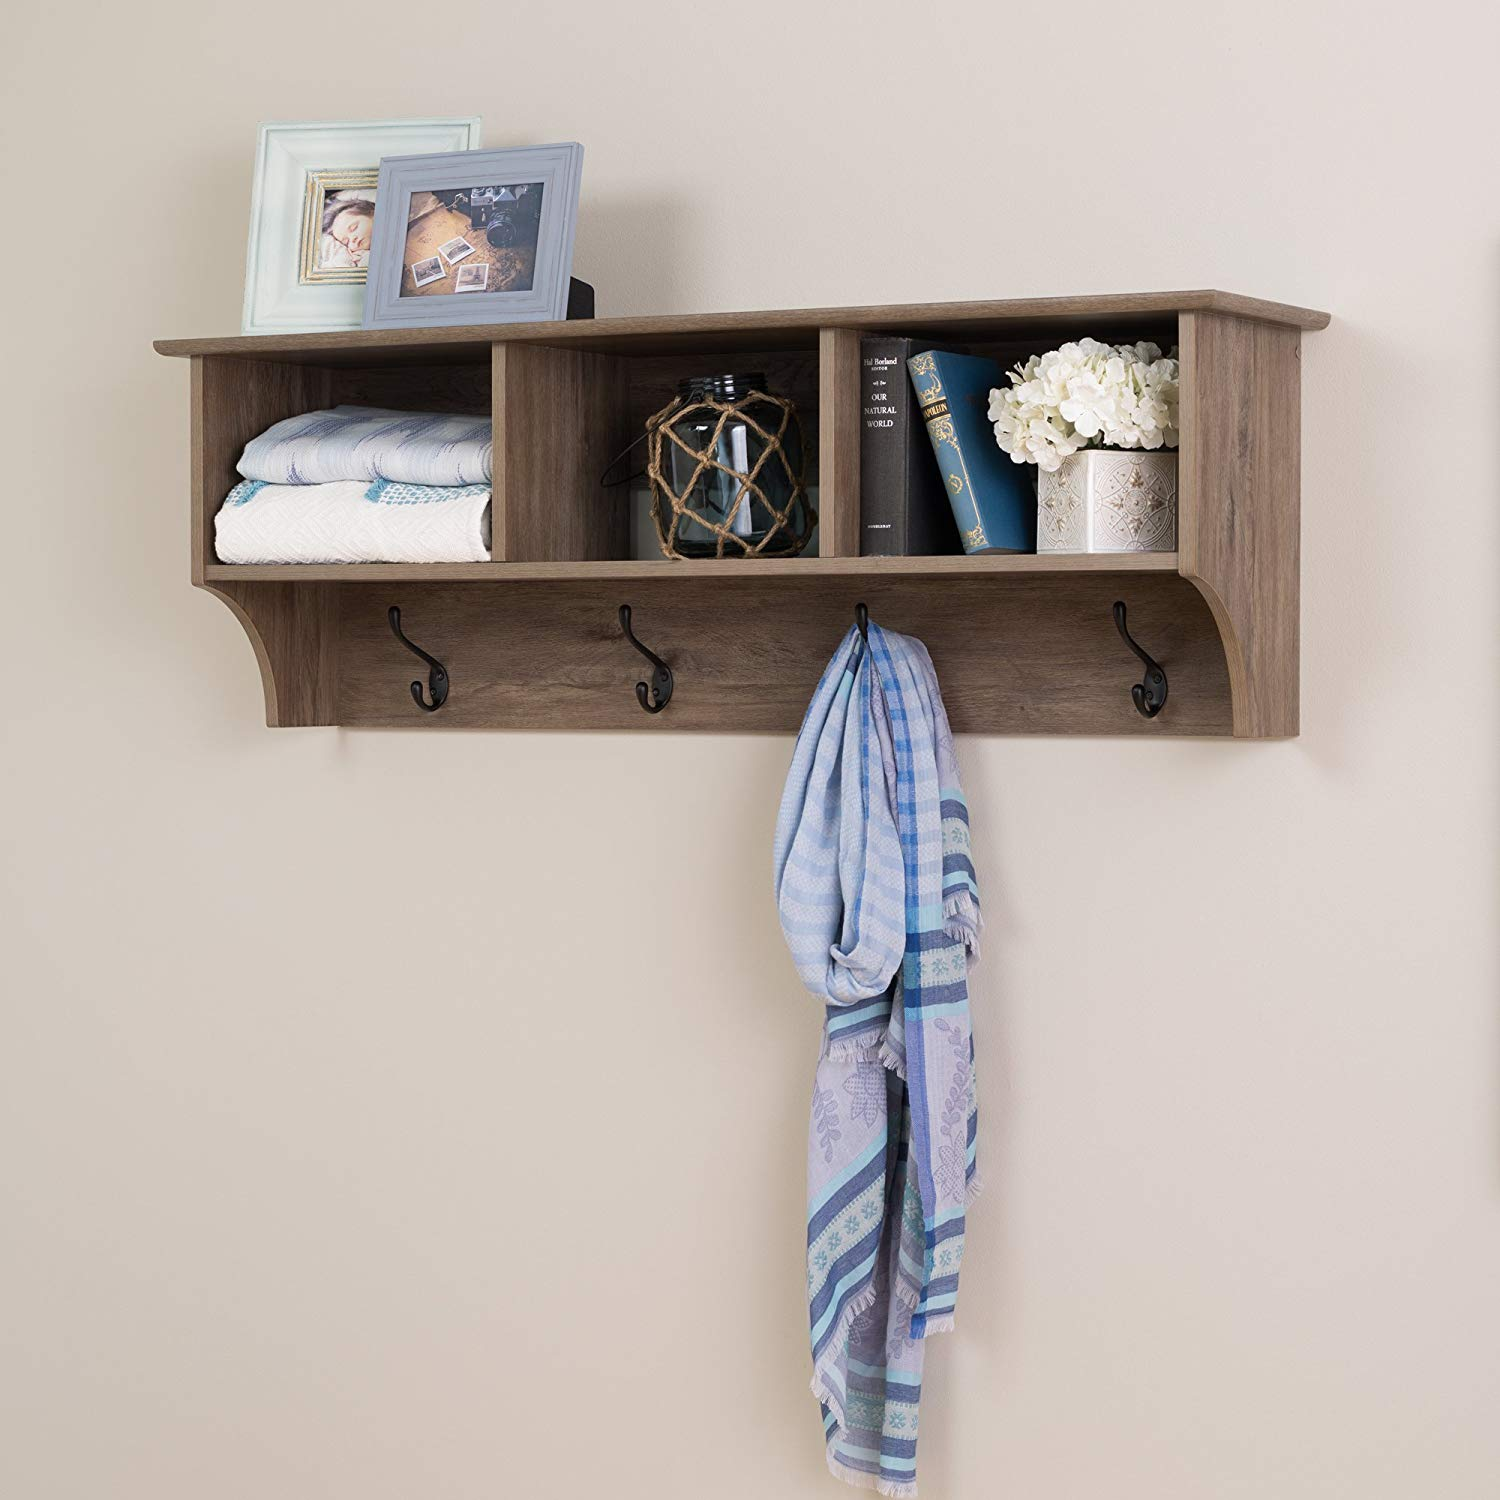 prepac wide hanging entryway shelf inches floating with bench drifted gray kitchen dining shelves dimensions storage fitting brackets for beam original bookcase white coat hook